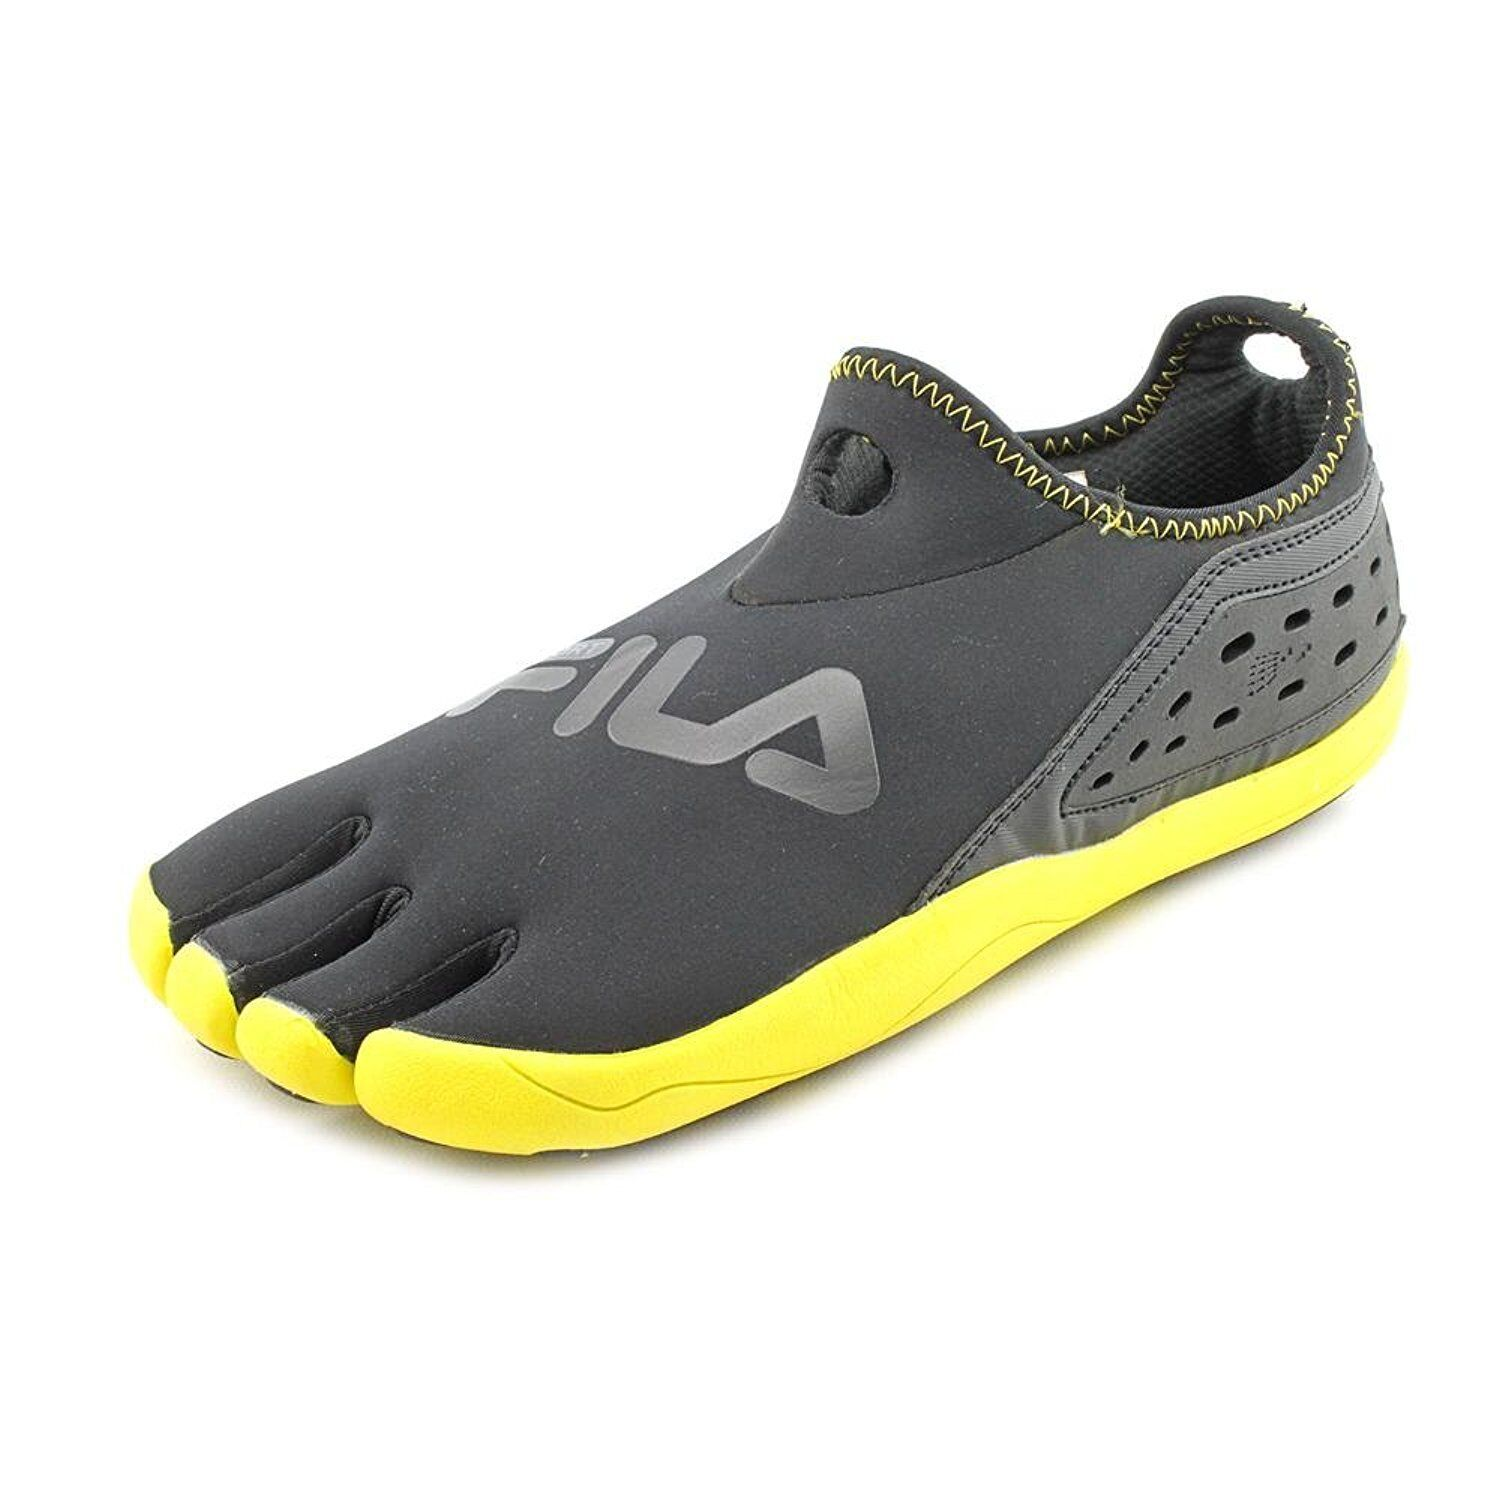 Fila  Homme Outdoors Chaussures- Pick SZ/Color.